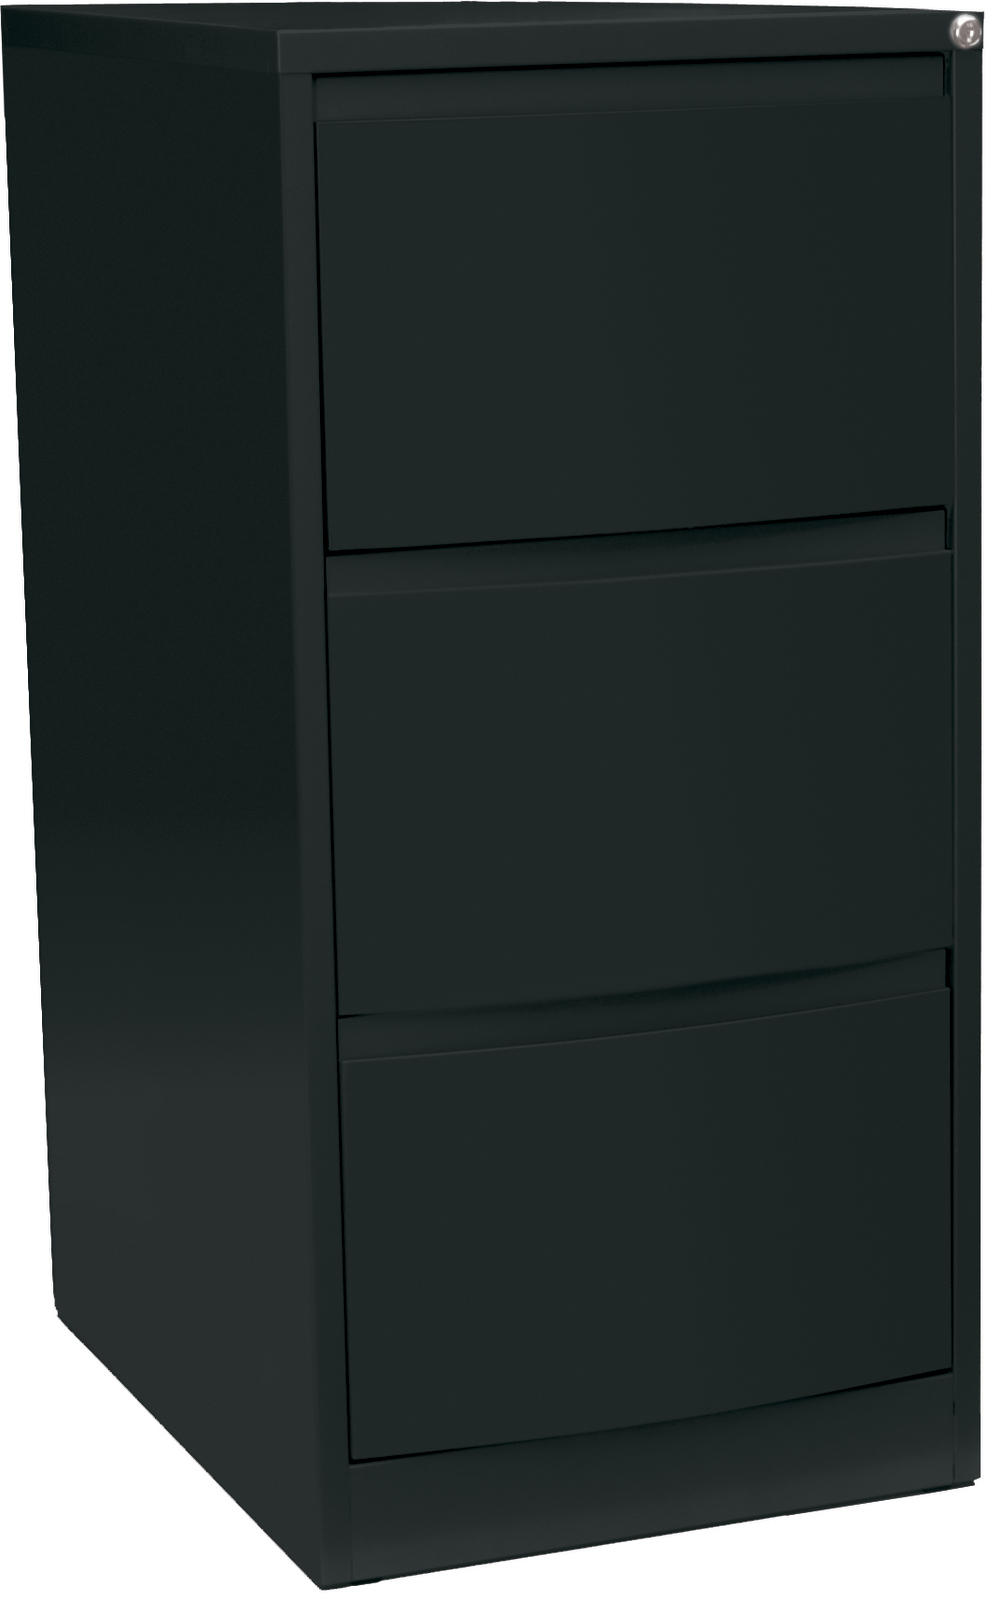 buy precision kurve lockable filing cabinet 3 drawer black texture at mighty ape nz